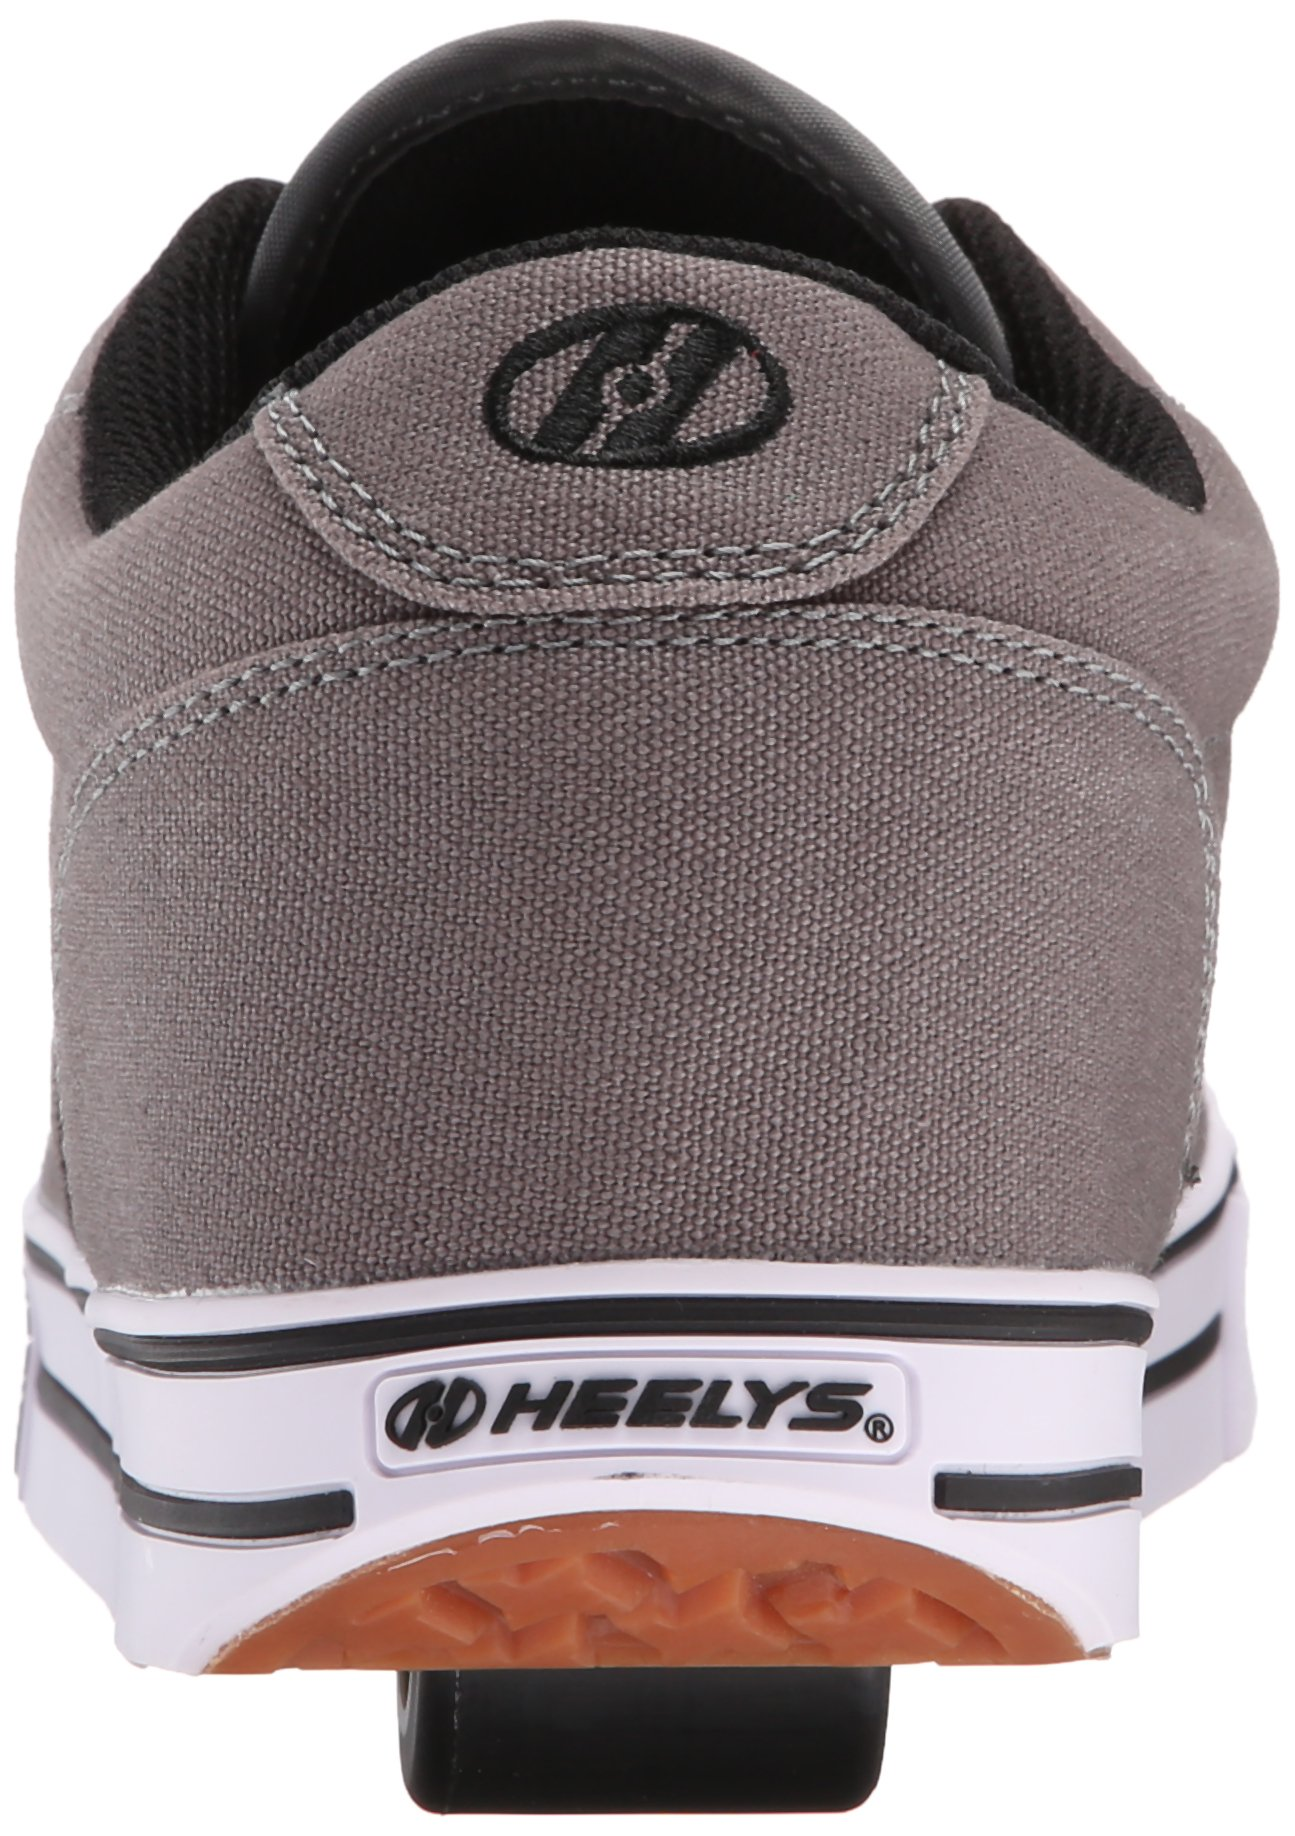 Heelys Men's Launch Fashion Sneaker Grey 10 M US by Heelys (Image #2)